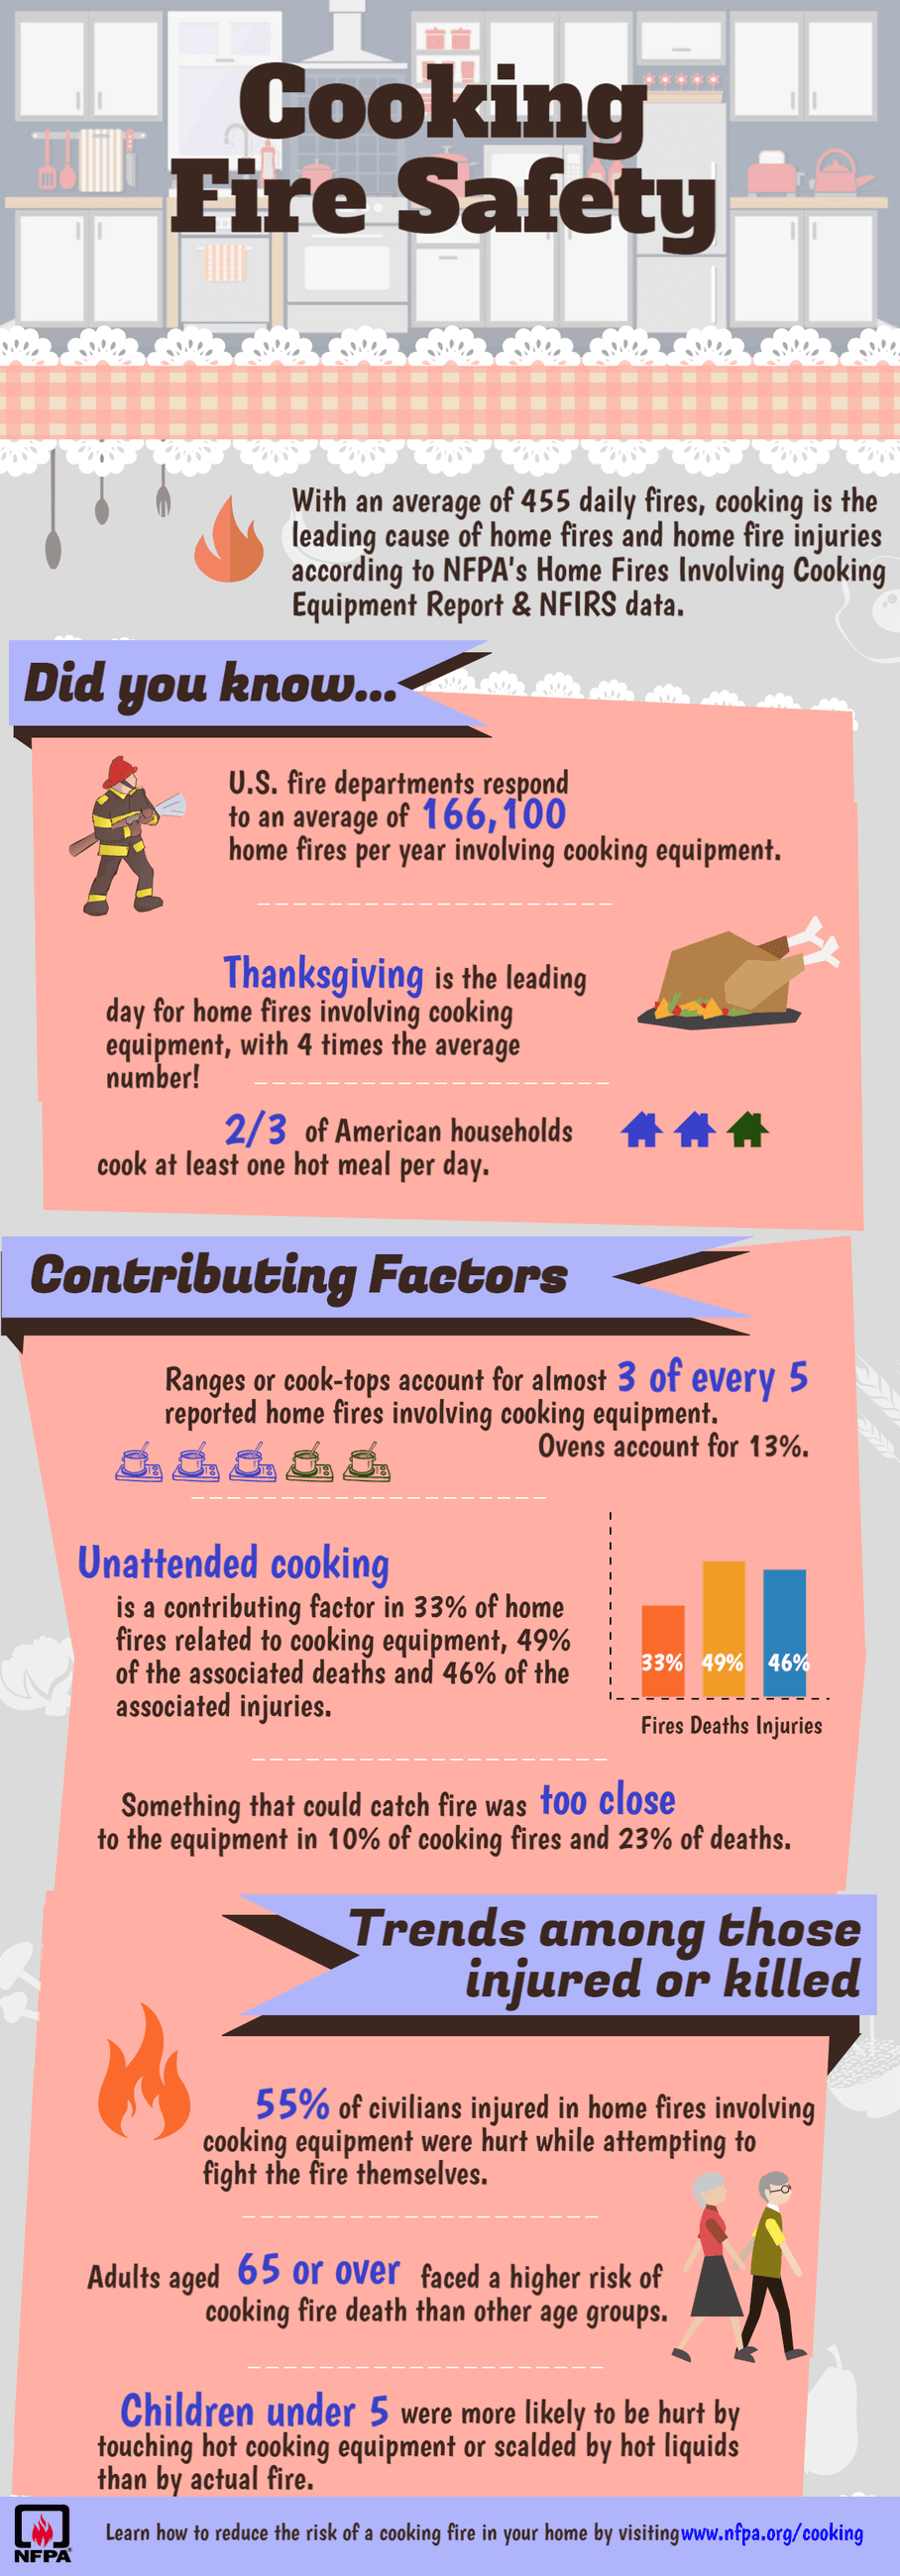 CookingSafetyInfographic2016